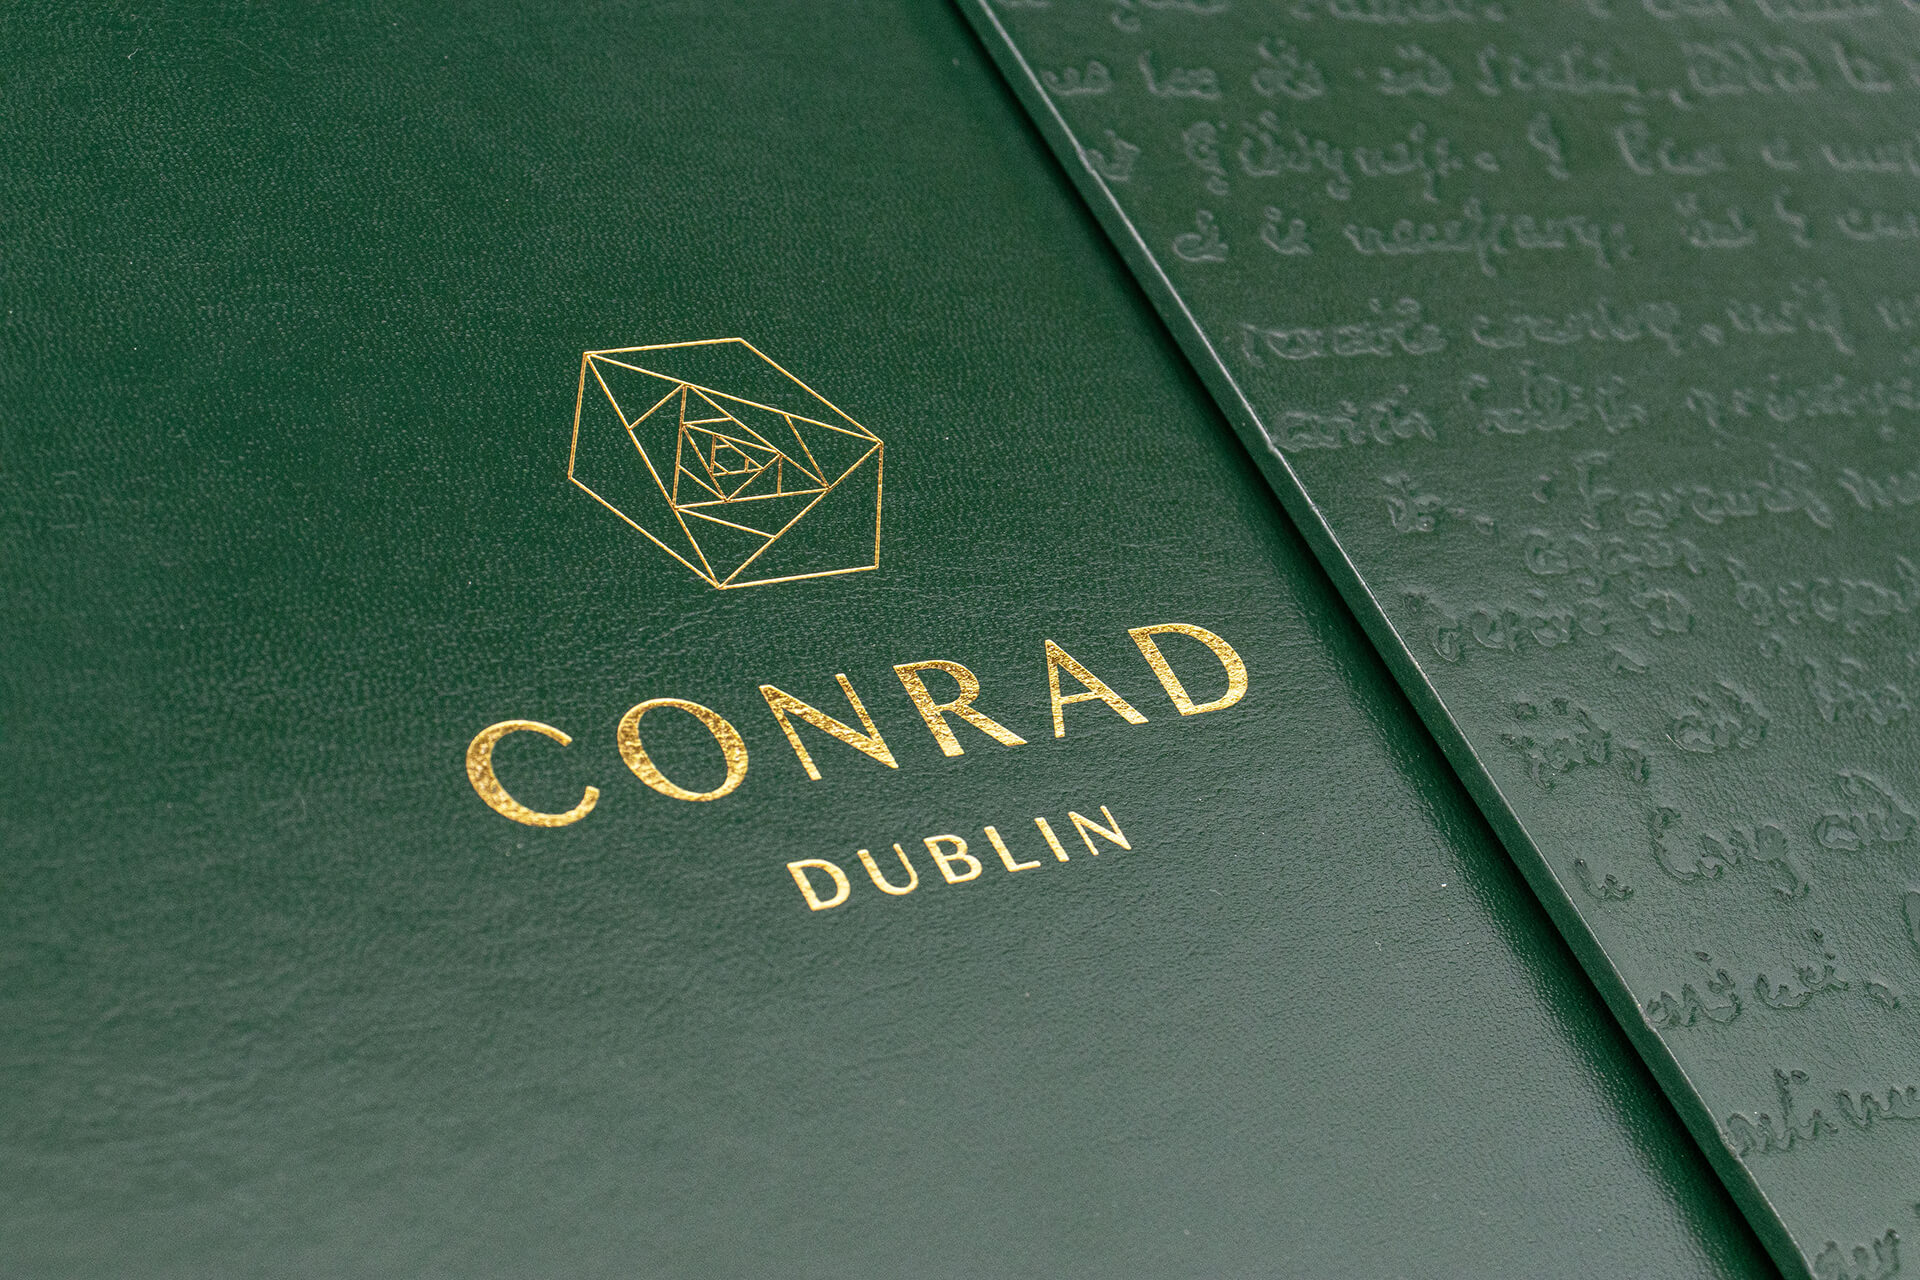 The Conrad Dublin